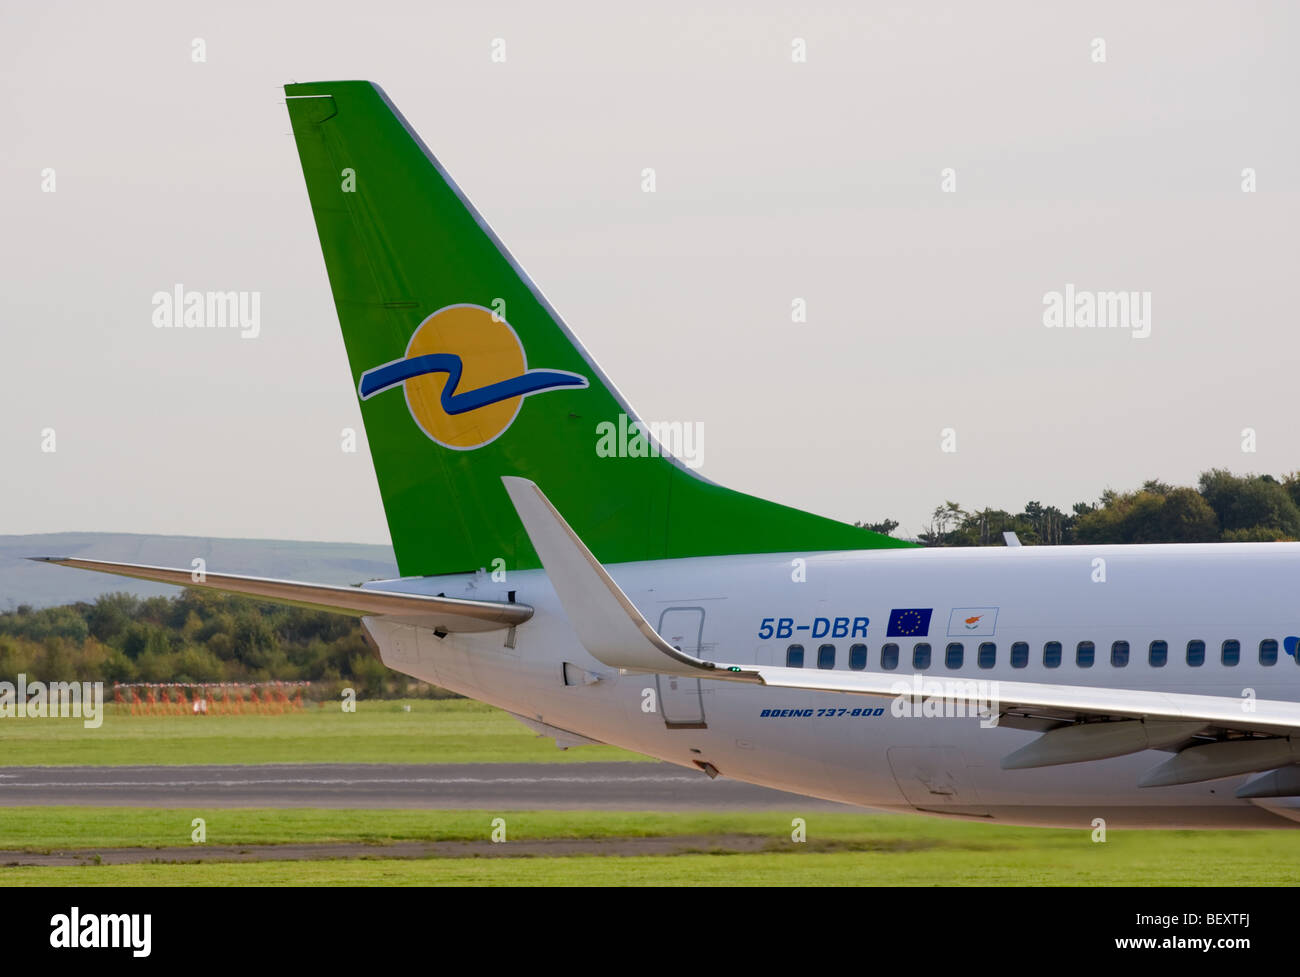 Tail of Eurocypria Airlines Boeing 737-8Q8 [Winglets] Airliner 5B-DBR Taxiing at Manchester International Airport - Stock Image